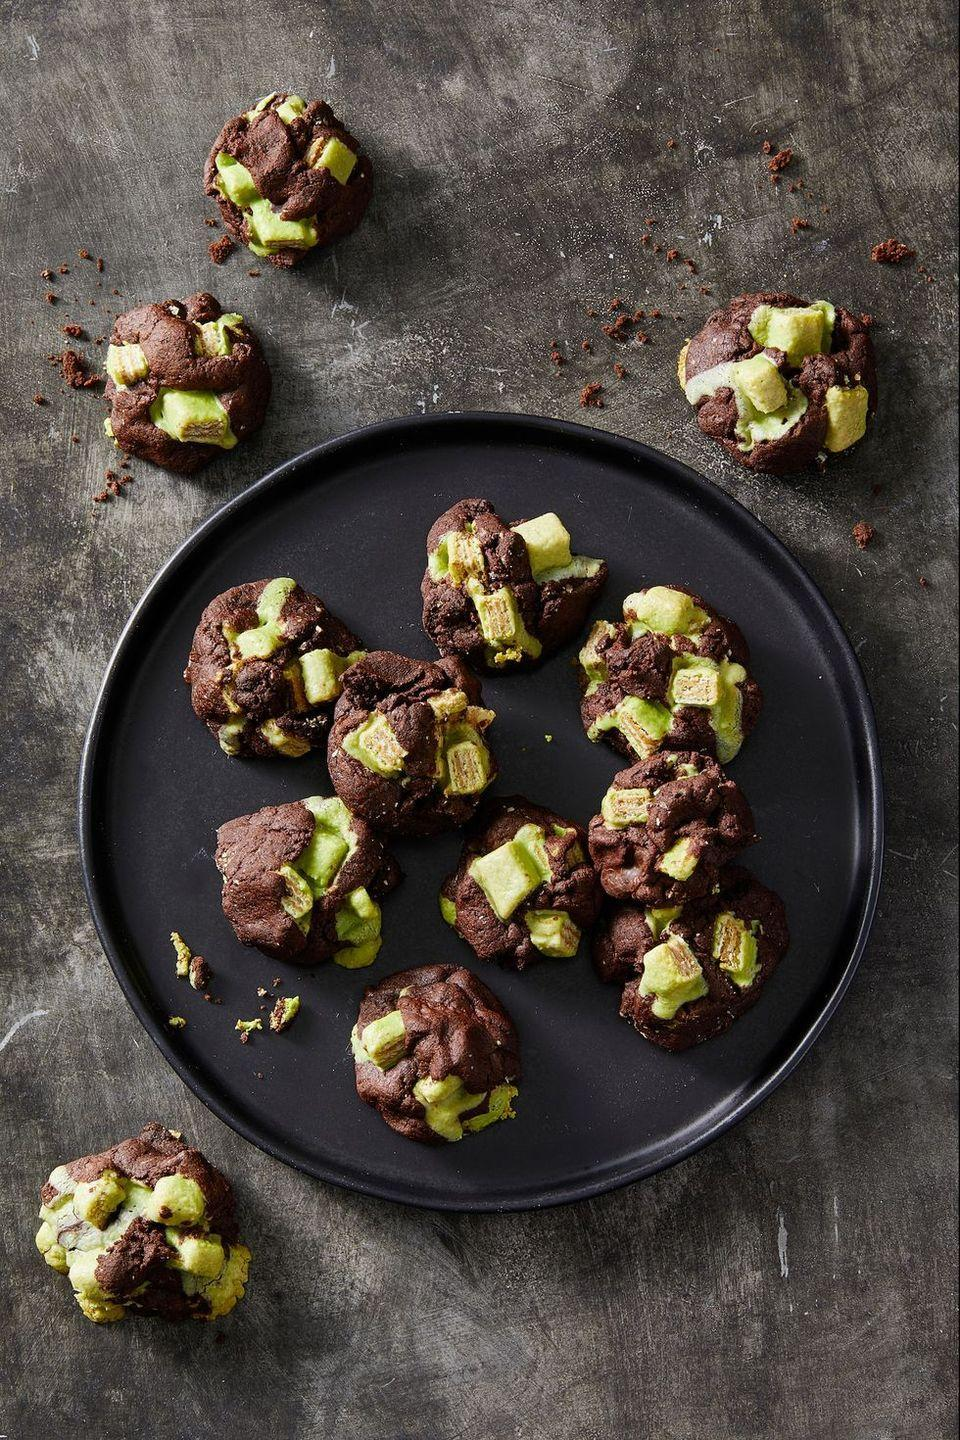 """<p>Break off pieces of these crunchy matcha candy bars and add to deep dark chocolate cookie dough.<br></p><p><em><a href=""""https://www.goodhousekeeping.com/food-recipes/a28541666/dark-chocolate-candy-cookies-recipe/"""" rel=""""nofollow noopener"""" target=""""_blank"""" data-ylk=""""slk:Get the recipe for Dark Chocolate Candy Cookies »"""" class=""""link rapid-noclick-resp"""">Get the recipe for Dark Chocolate Candy Cookies »</a></em></p>"""